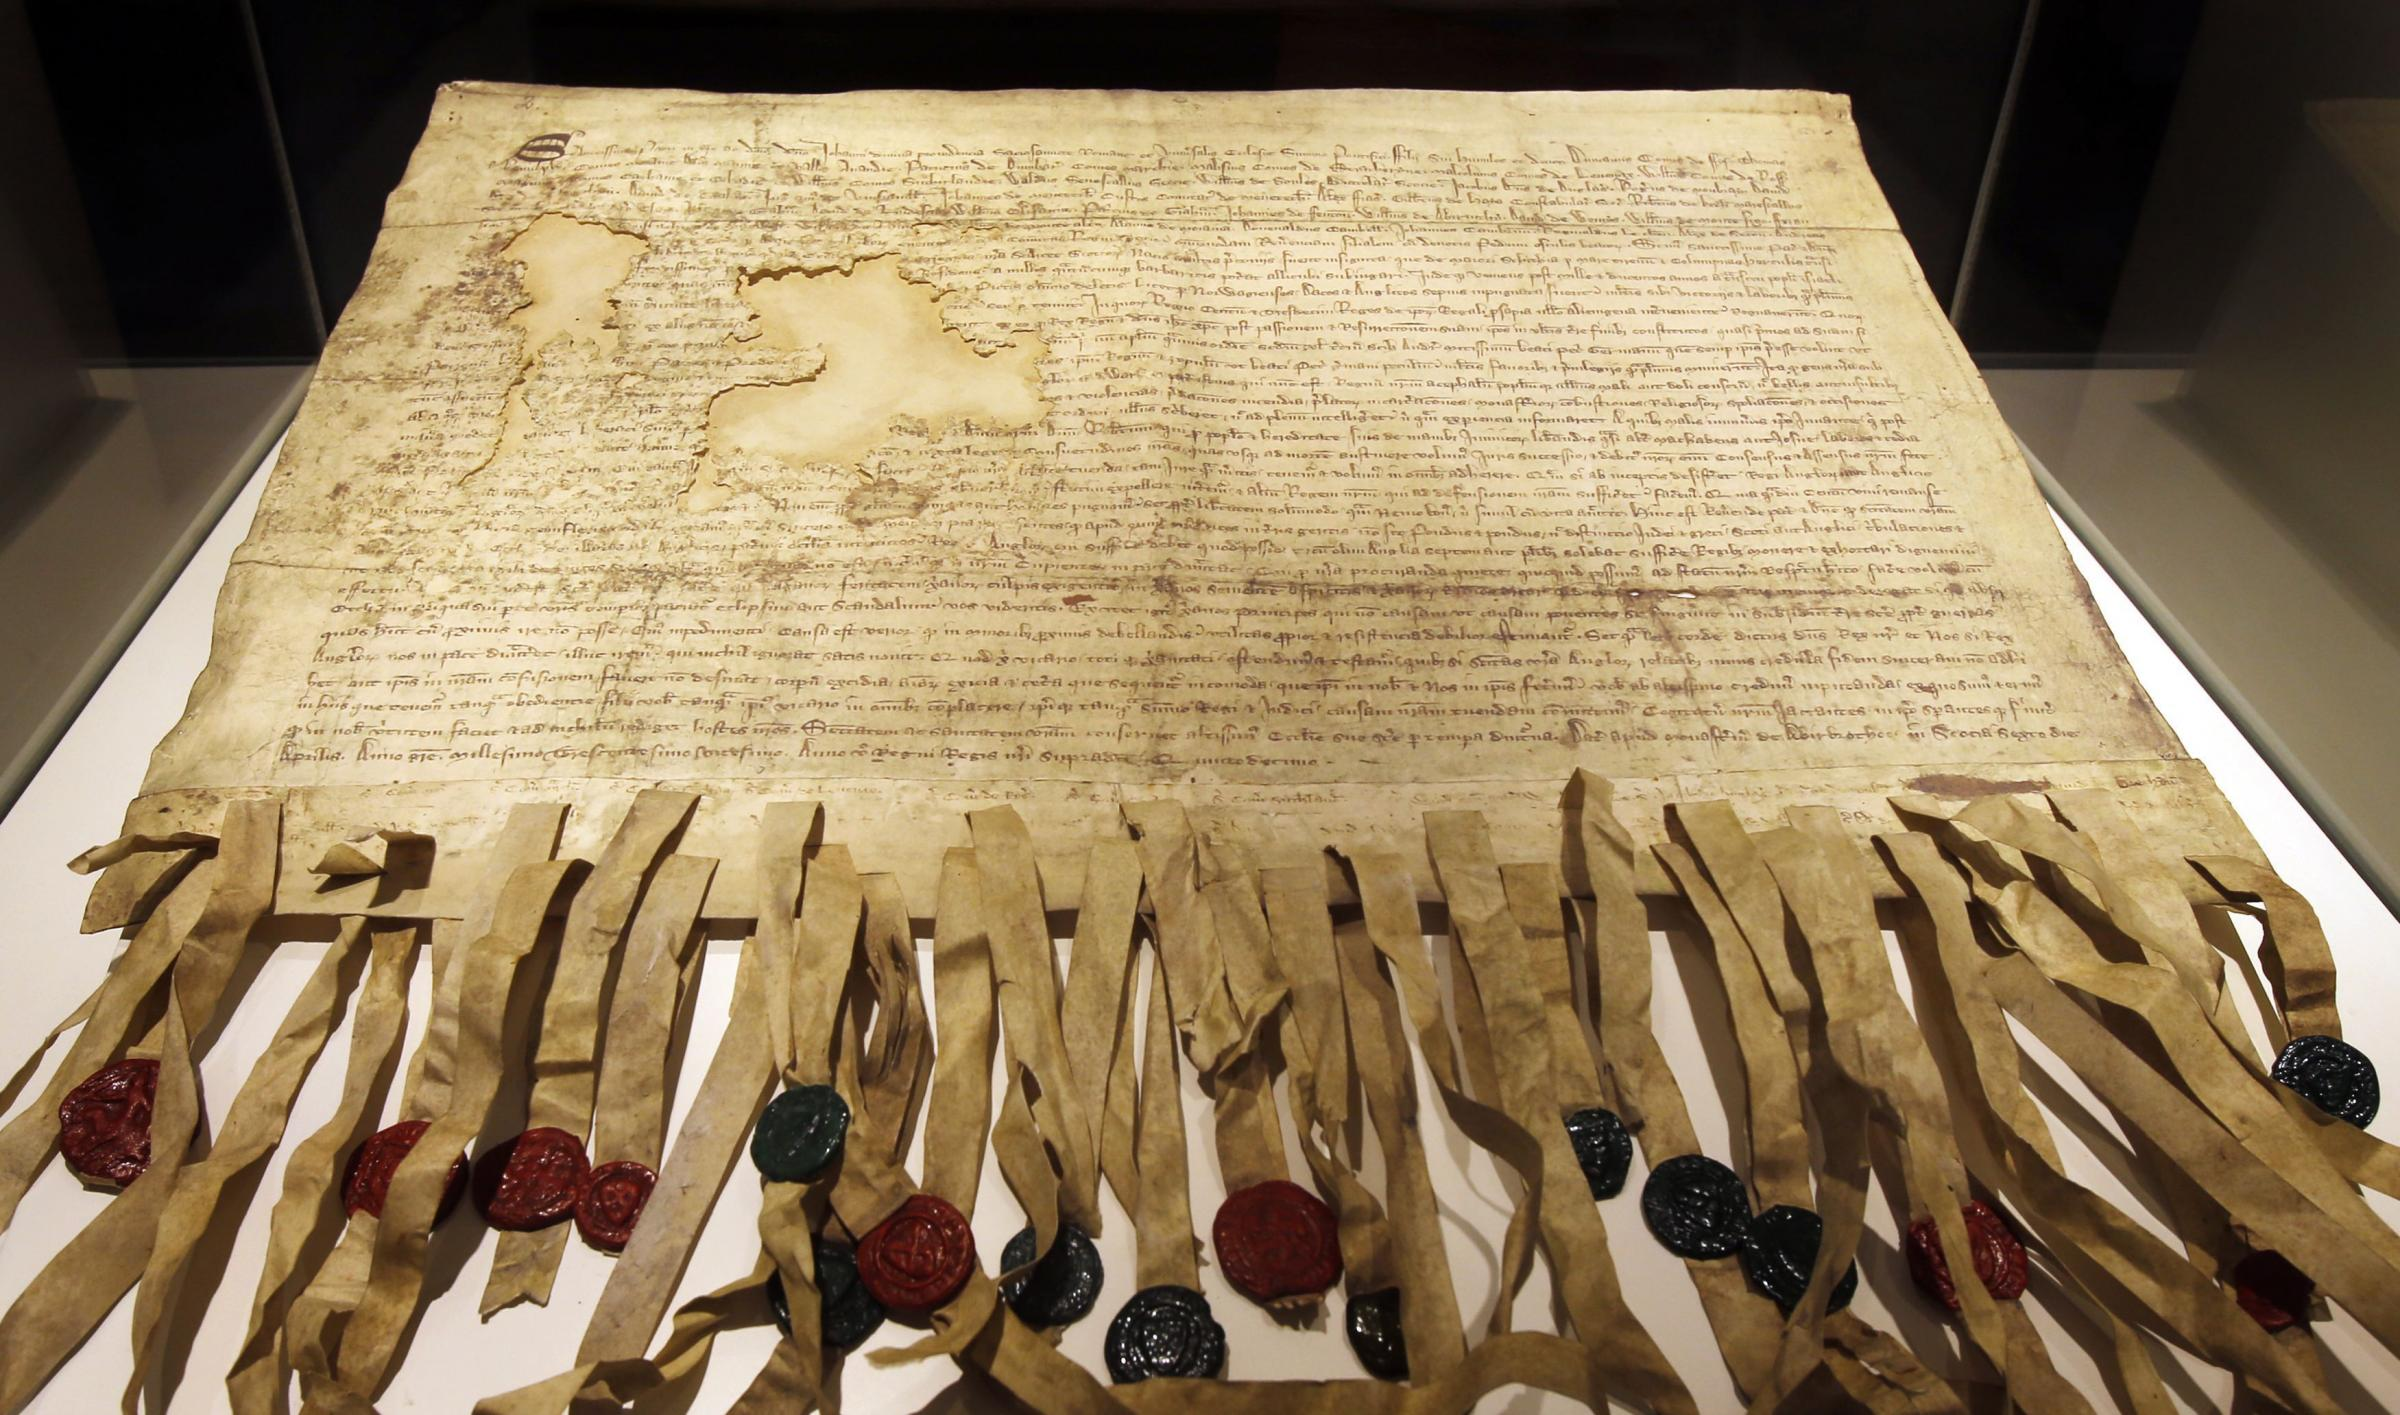 The Declaration of Arbroath is a key document in Scotland's history